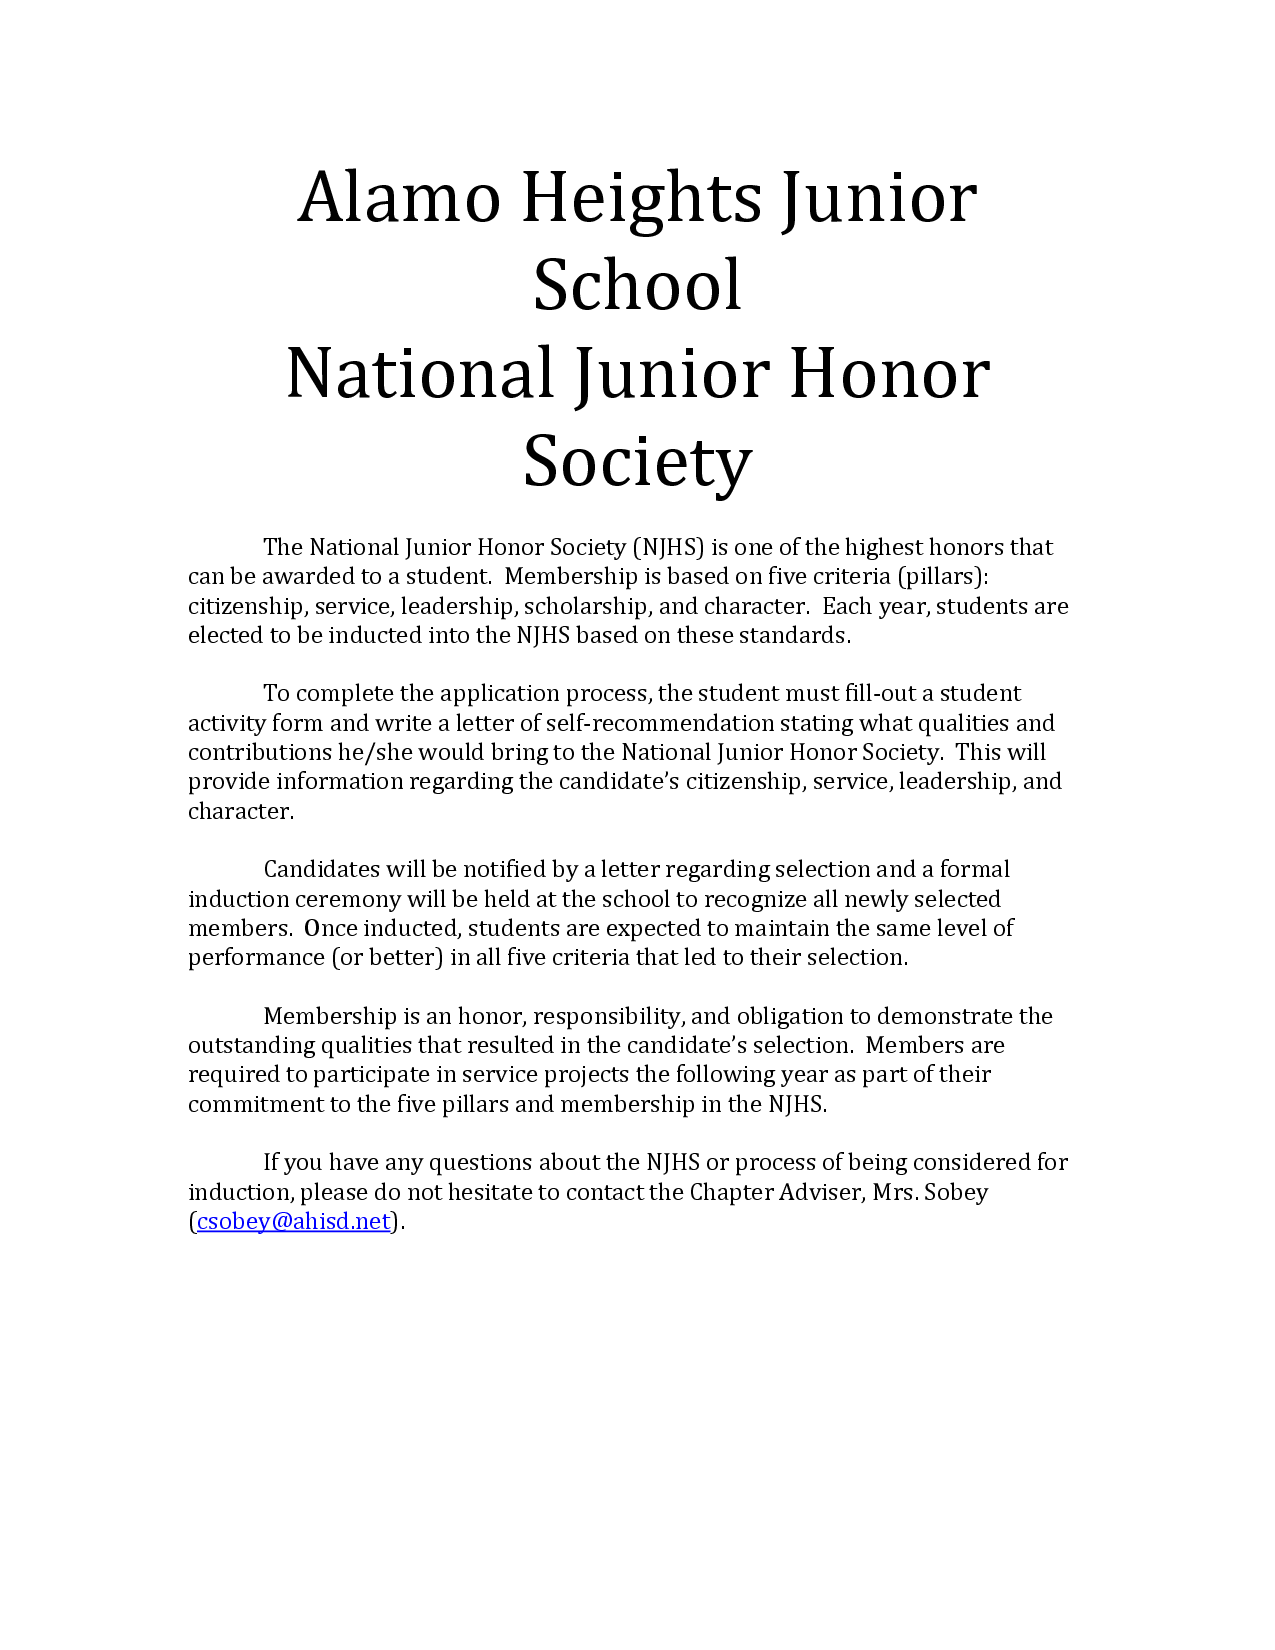 Recommendation Letter For National Honor Society Free Cover Application  Accounting Internship Job